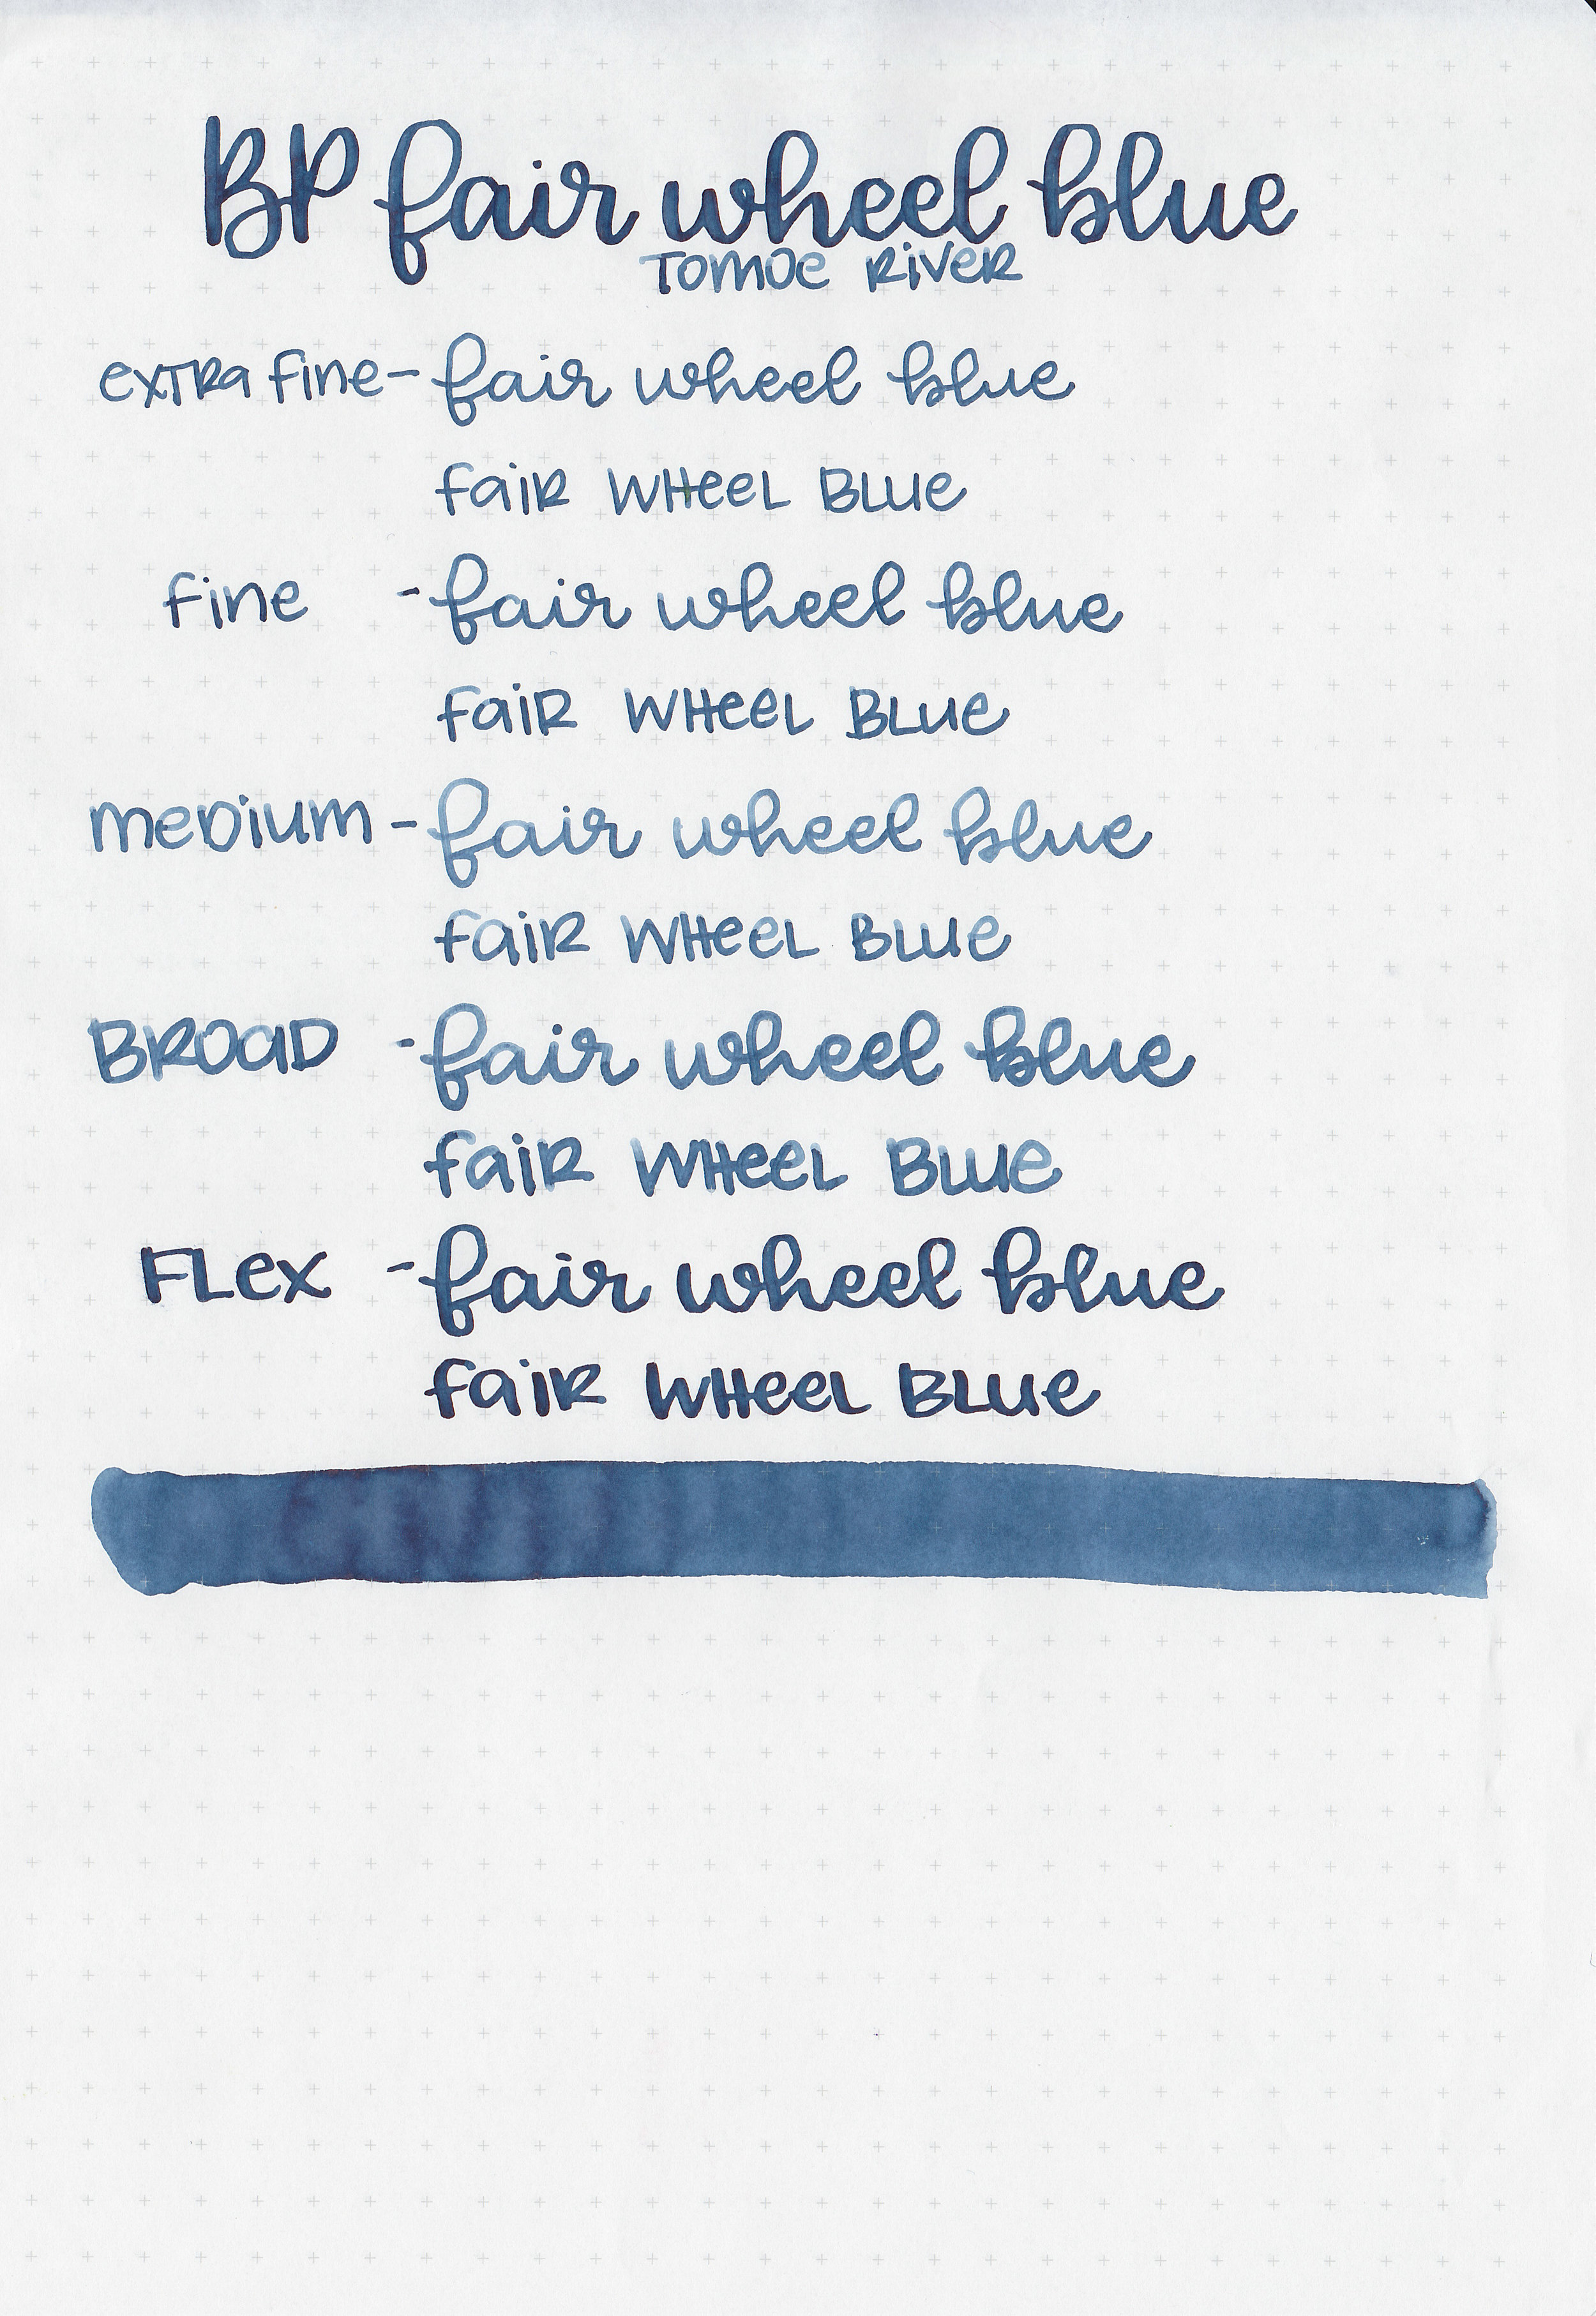 bp-fair-wheel-blue-10.jpg